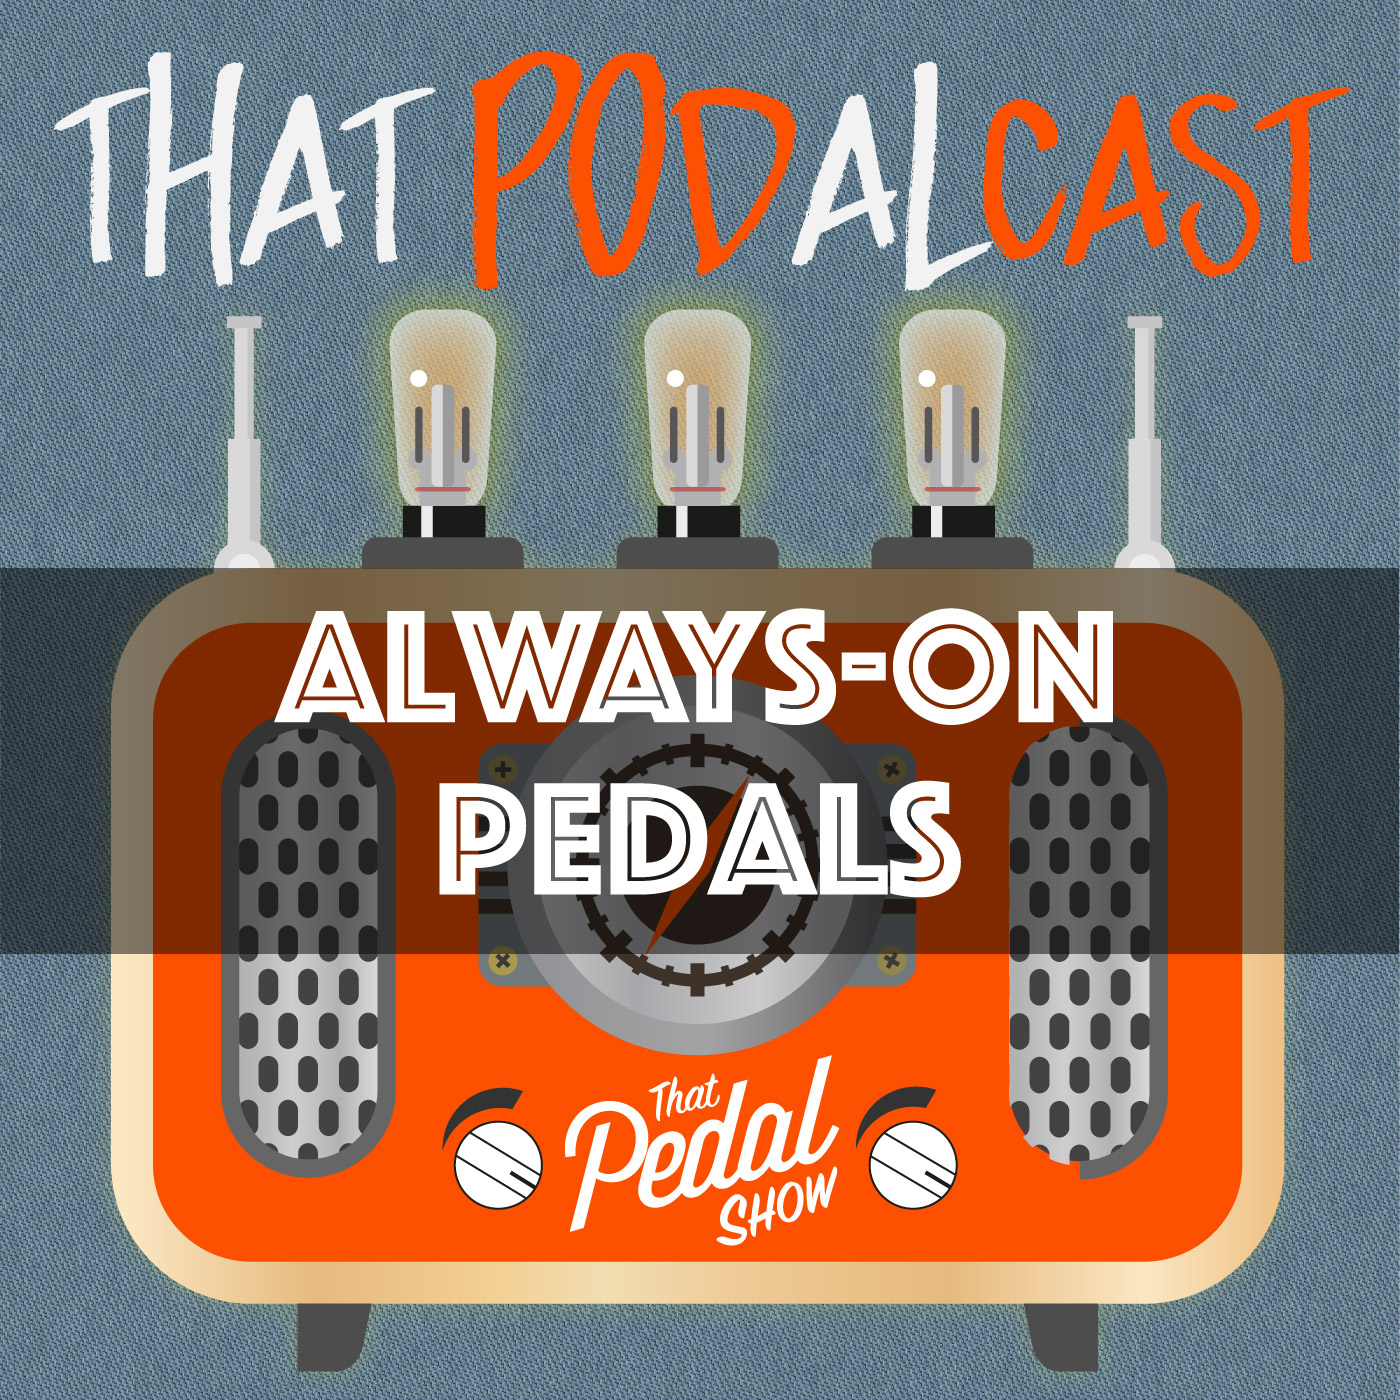 What's The Point Of Always-On Pedals? That Pedal Show